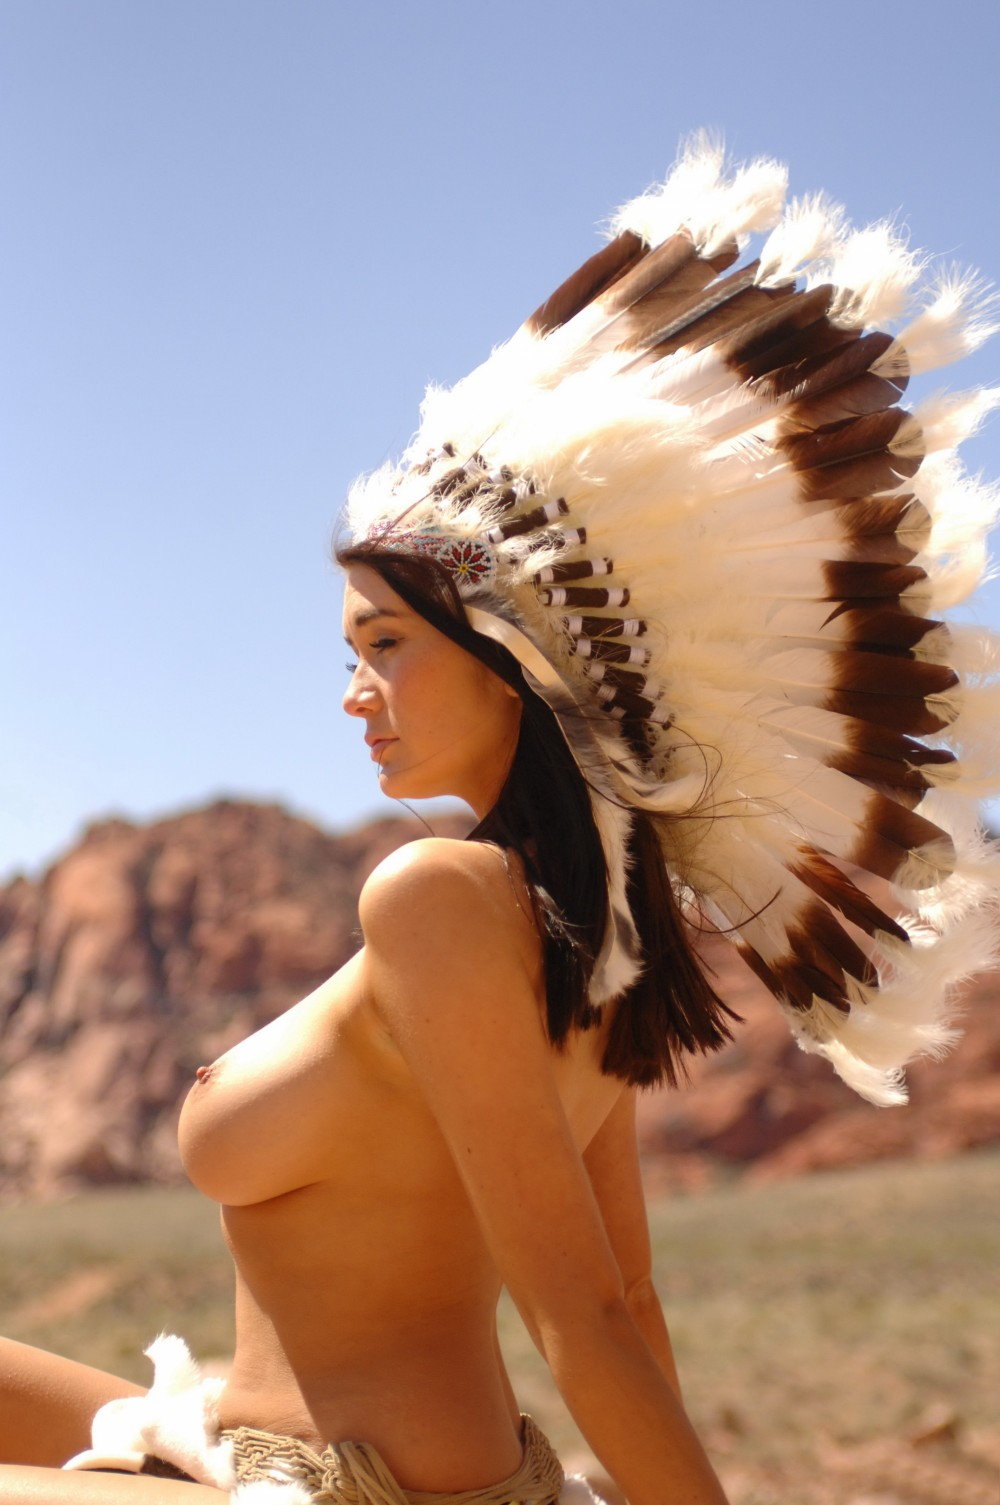 Page 3 Girls Archive - Peta Todd 'Big Chief'